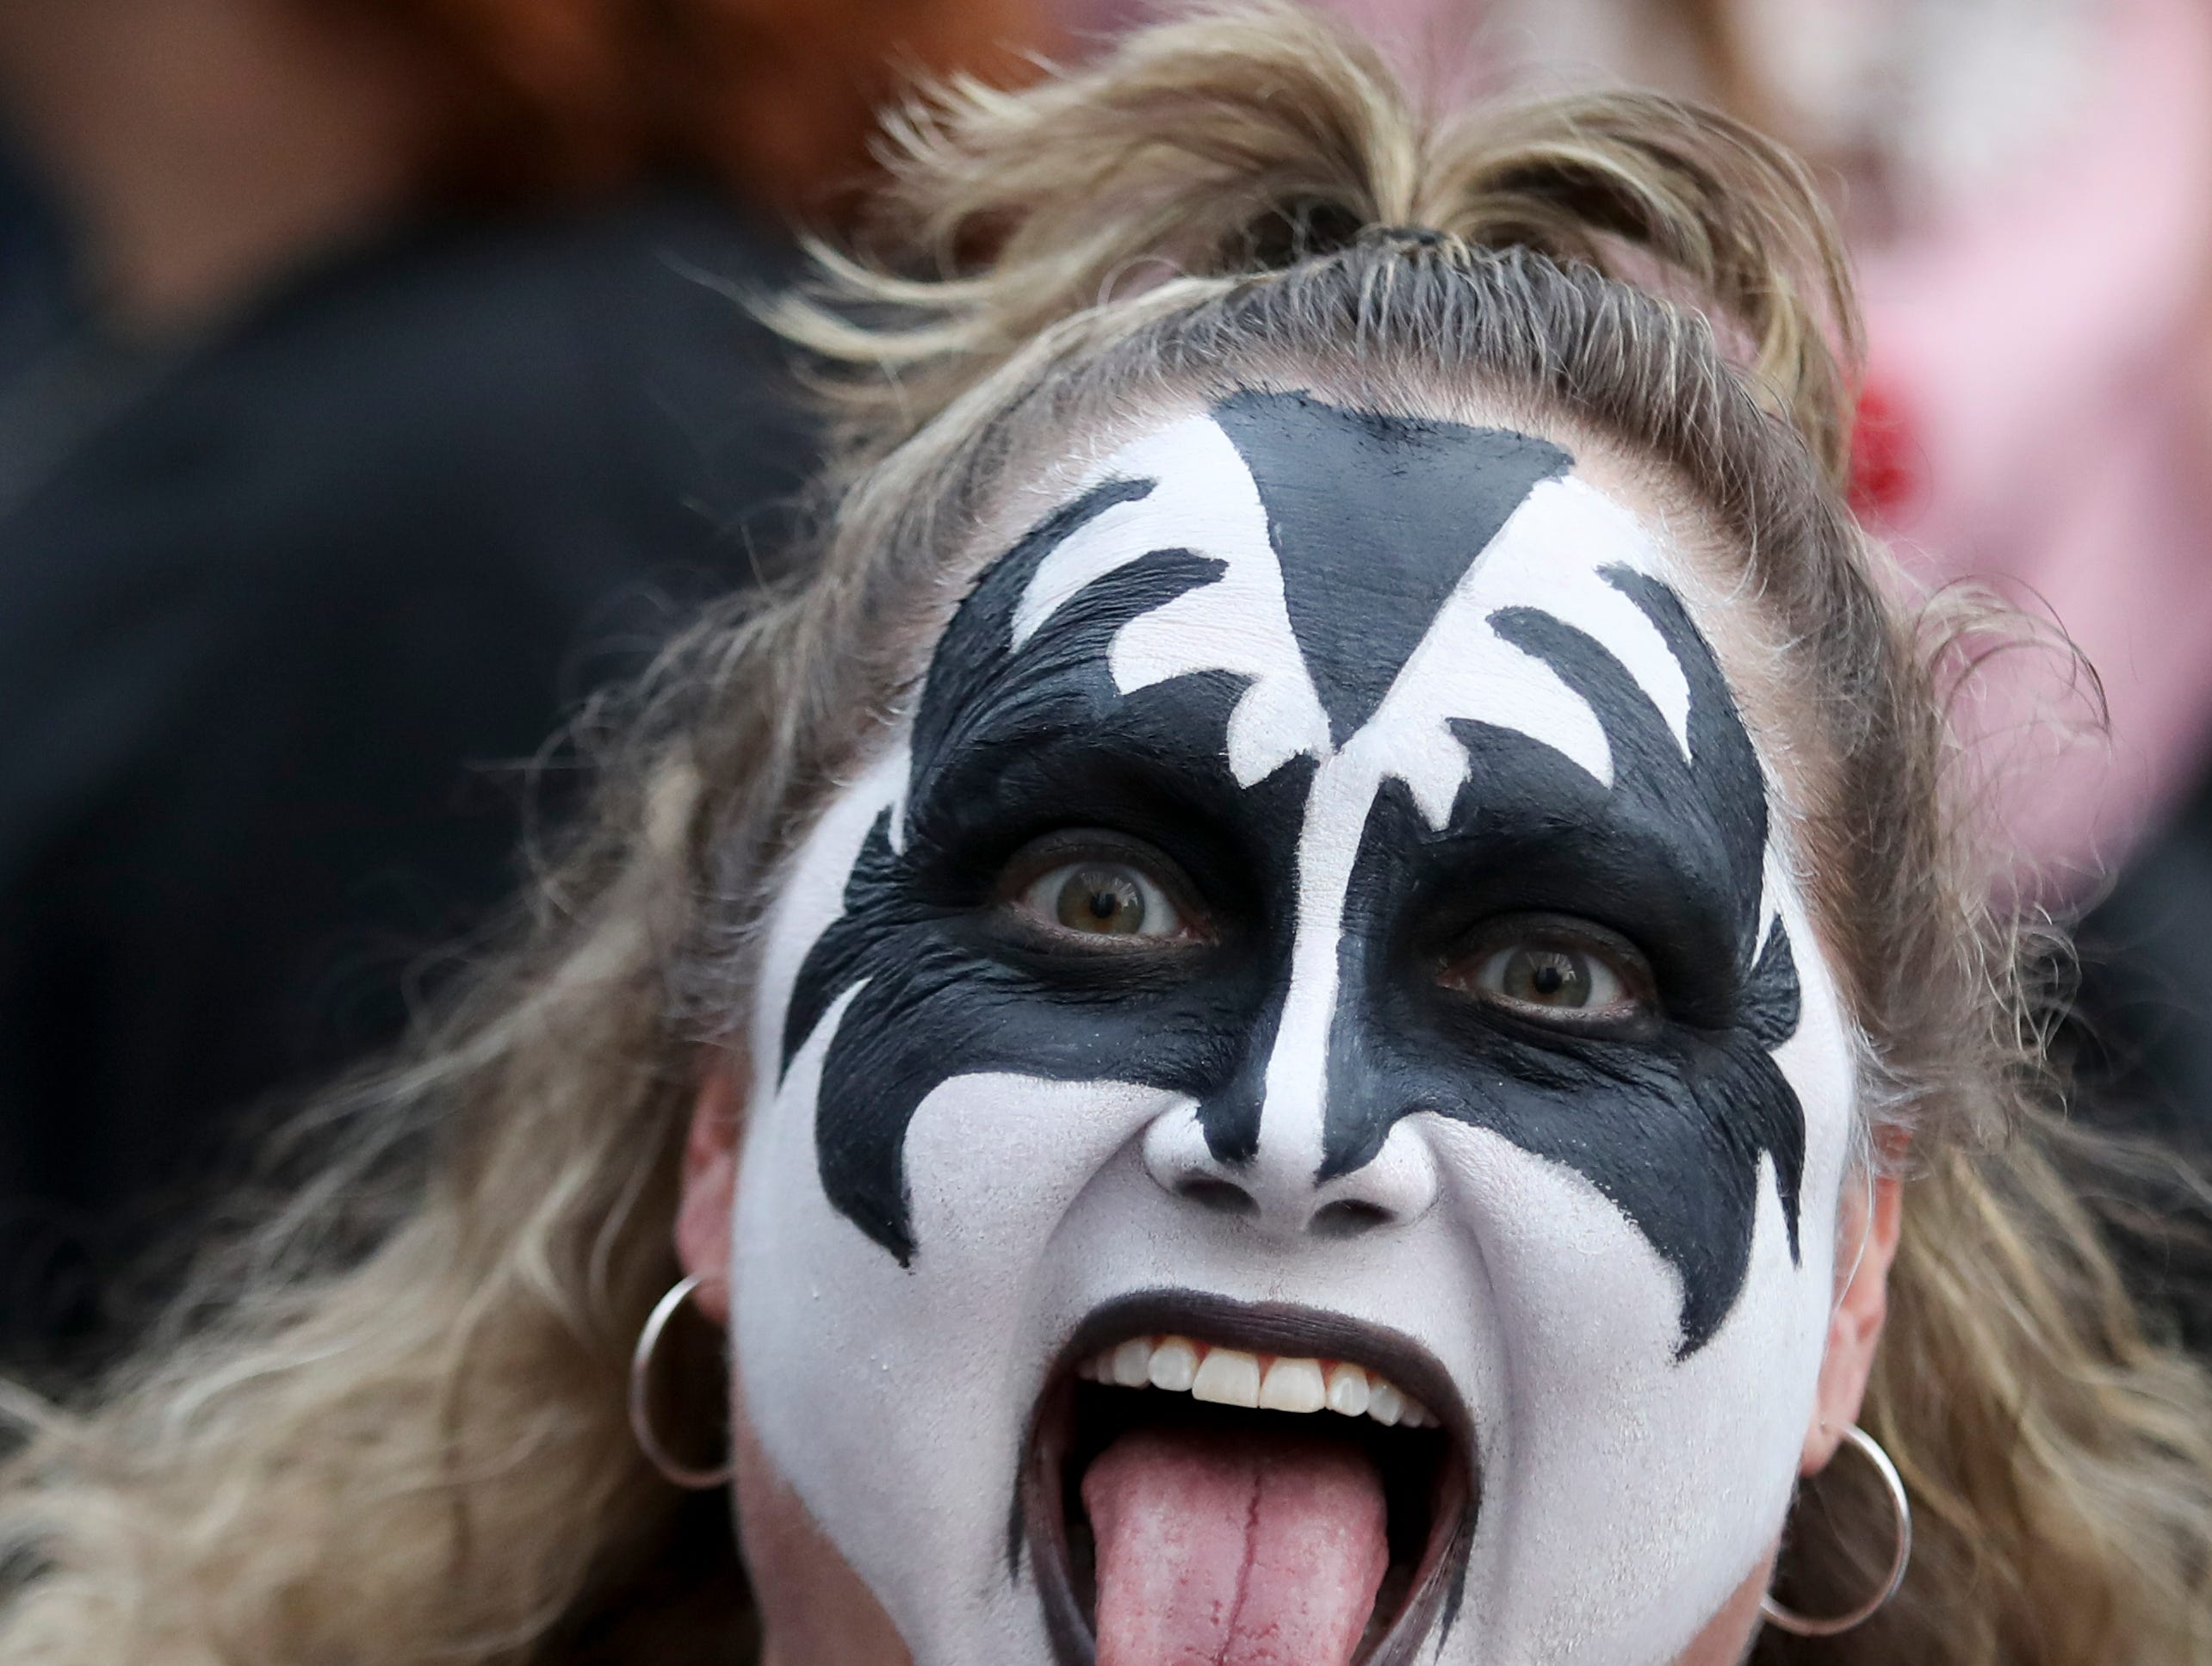 Fans of the band KISS show up at the KFC Yum Center on March 12 dressed to impress.